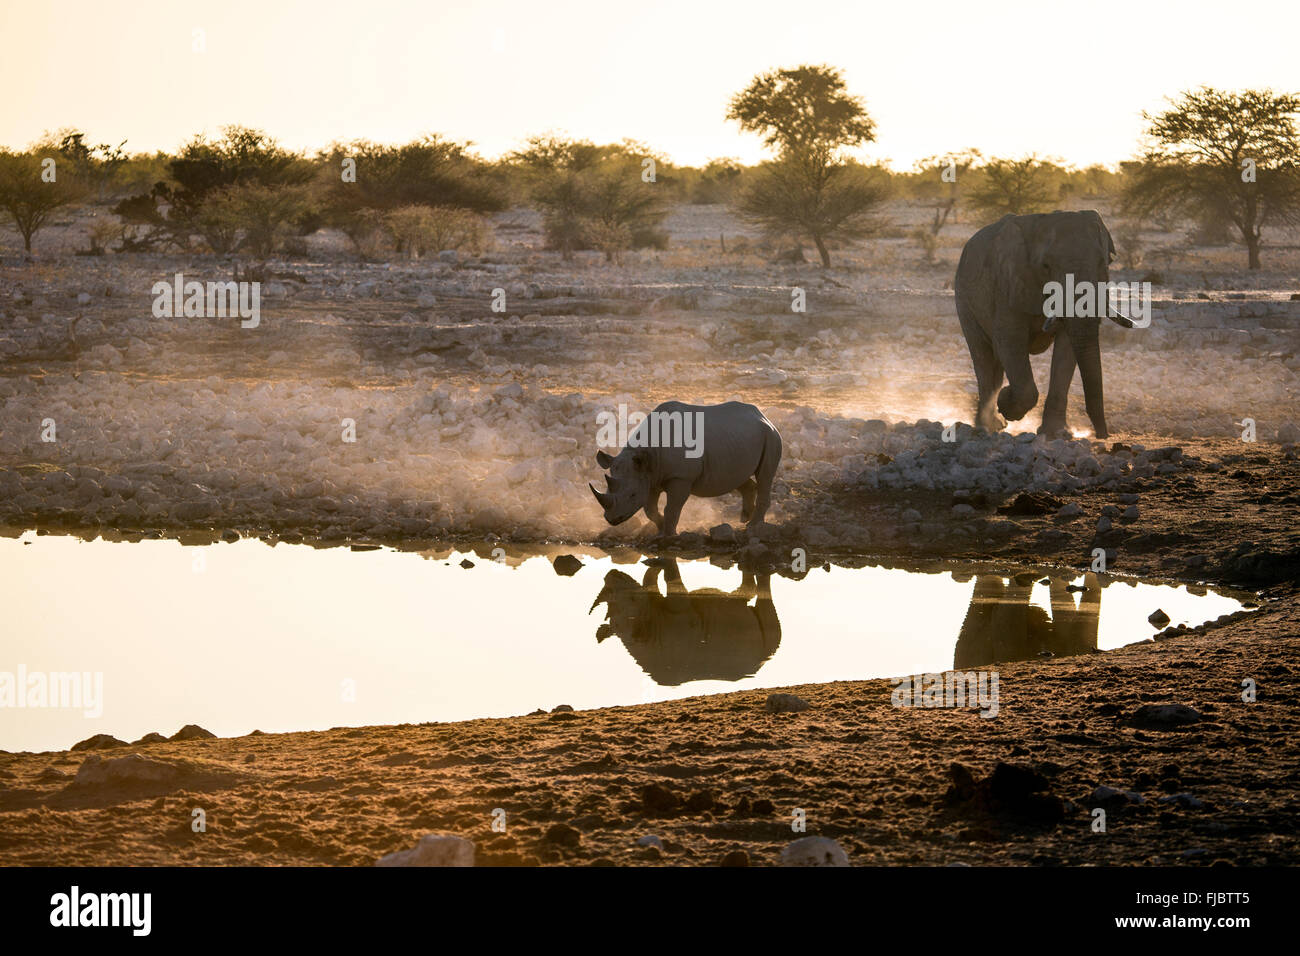 Rhino and an Elephant - Stock Image